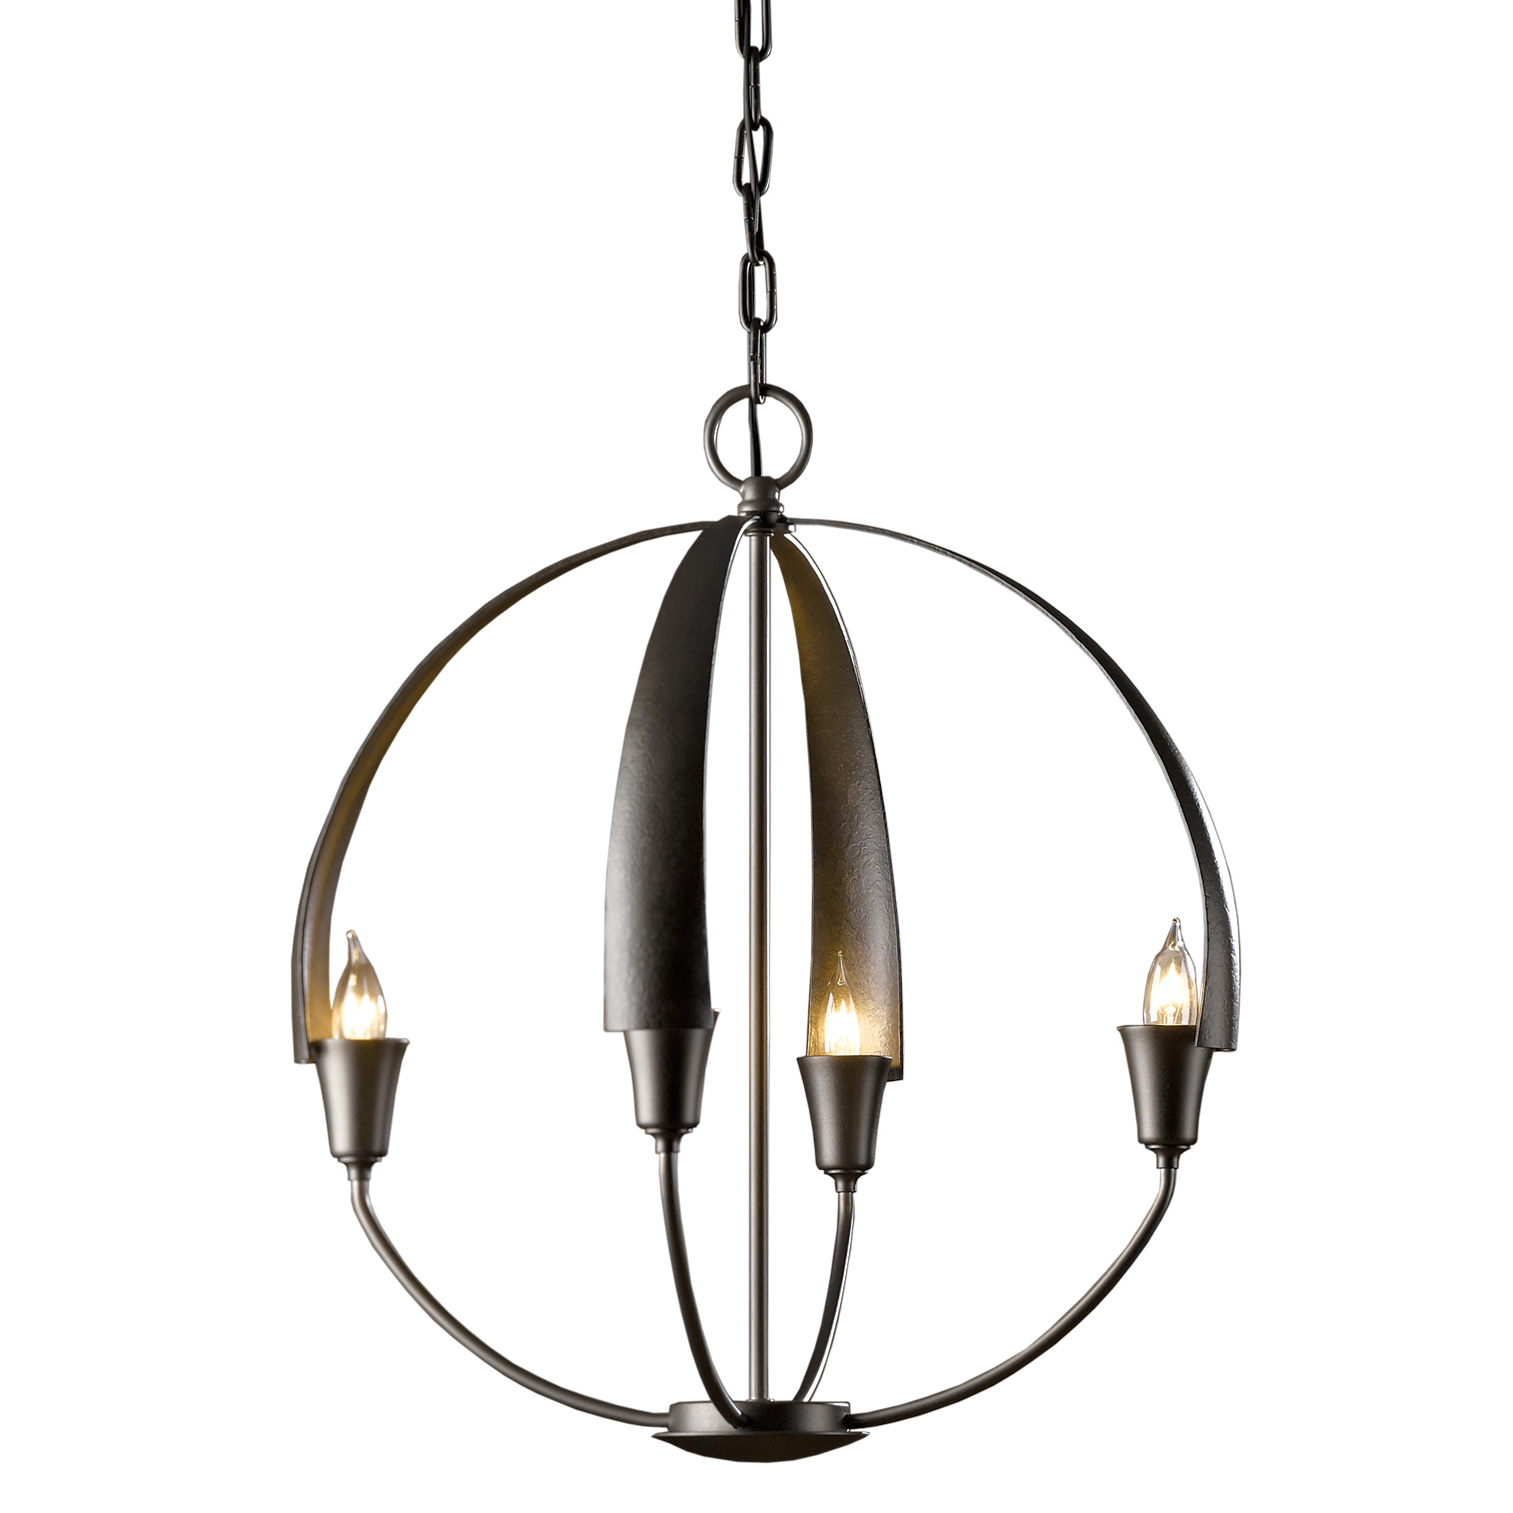 Hubbardton Forge Modern: Cirque Chandelier By Hubbardton Forge